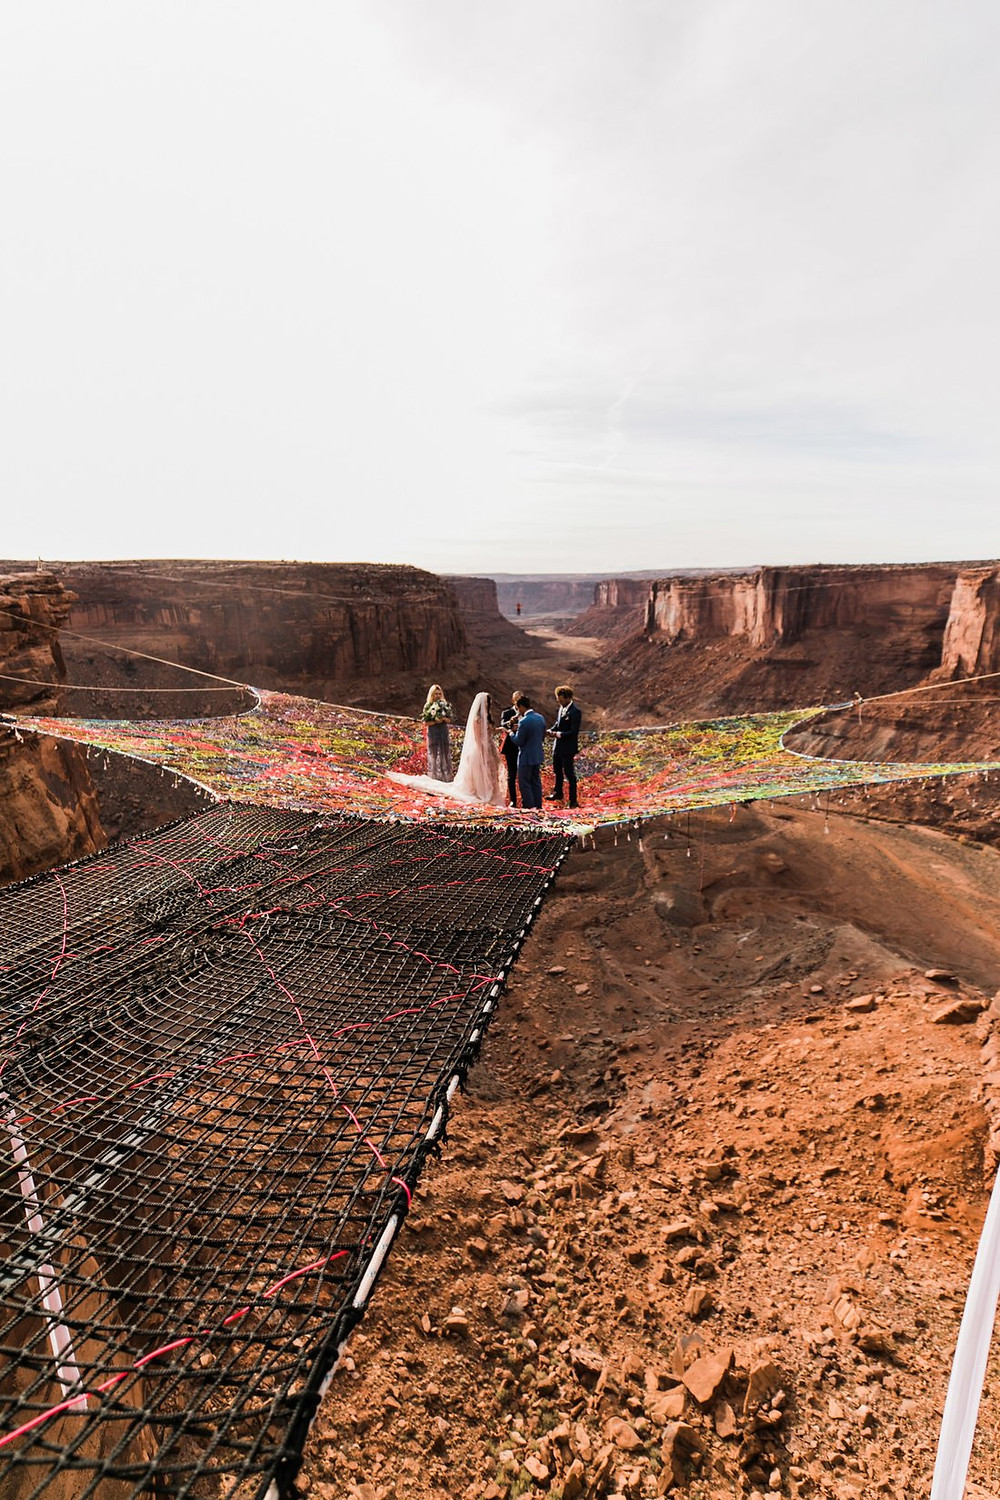 Adventurous couple gets married 400 ft above ground